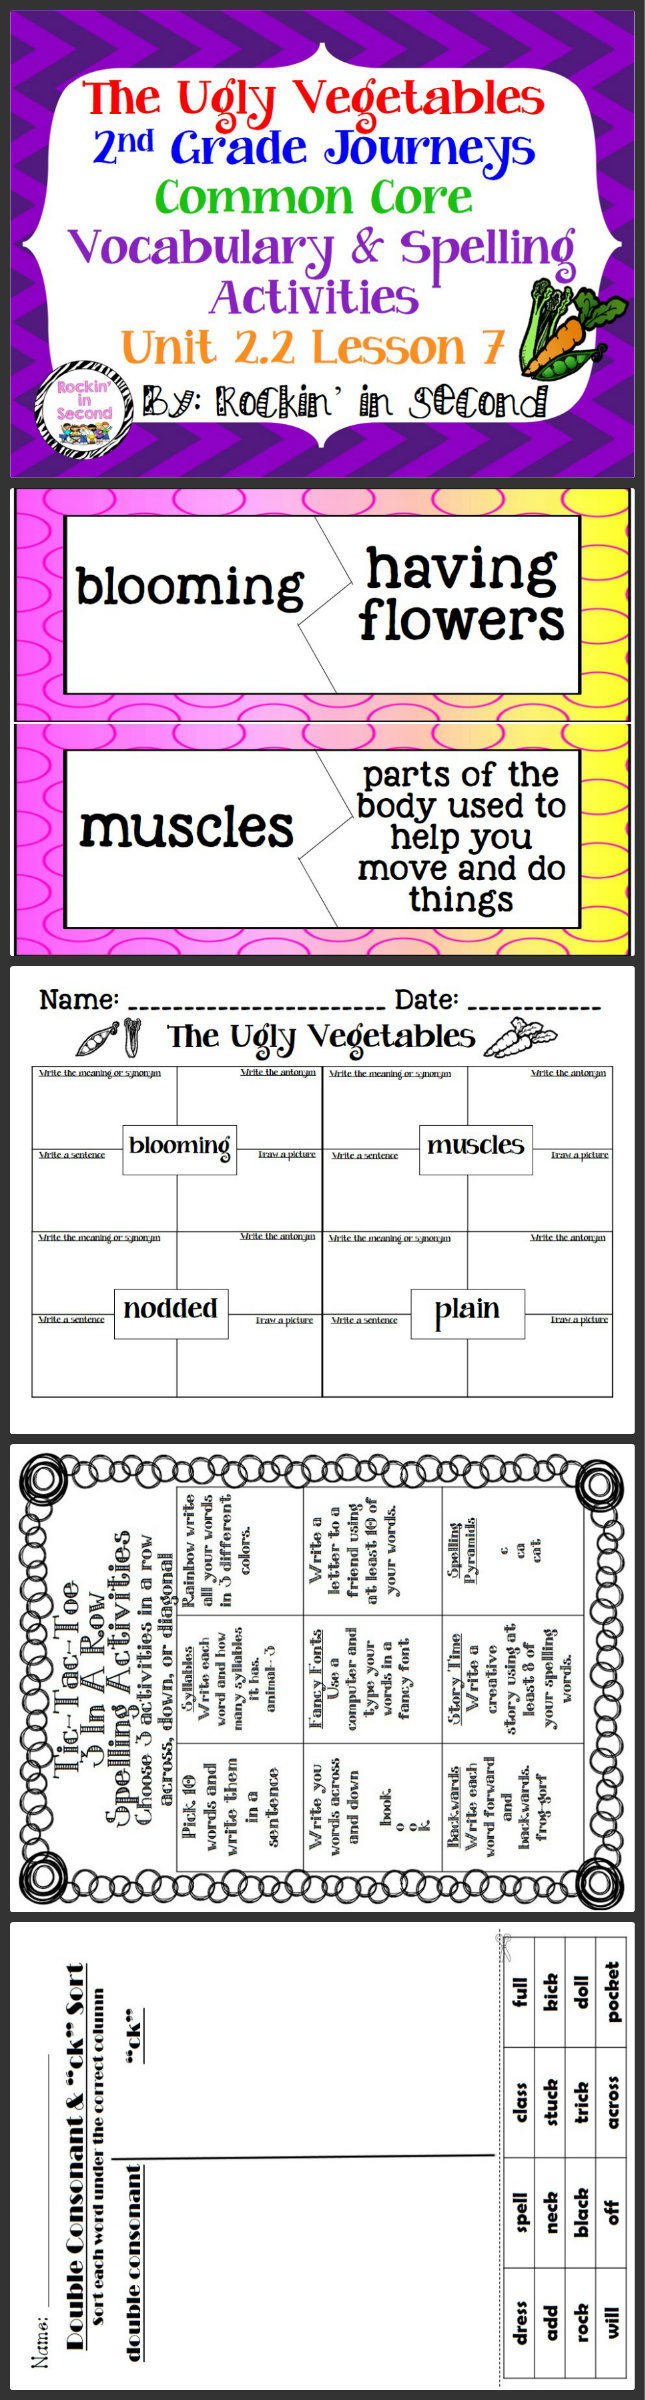 Journeys The Ugly Vegetables: Unit 2 2 Lesson 7 Spelling